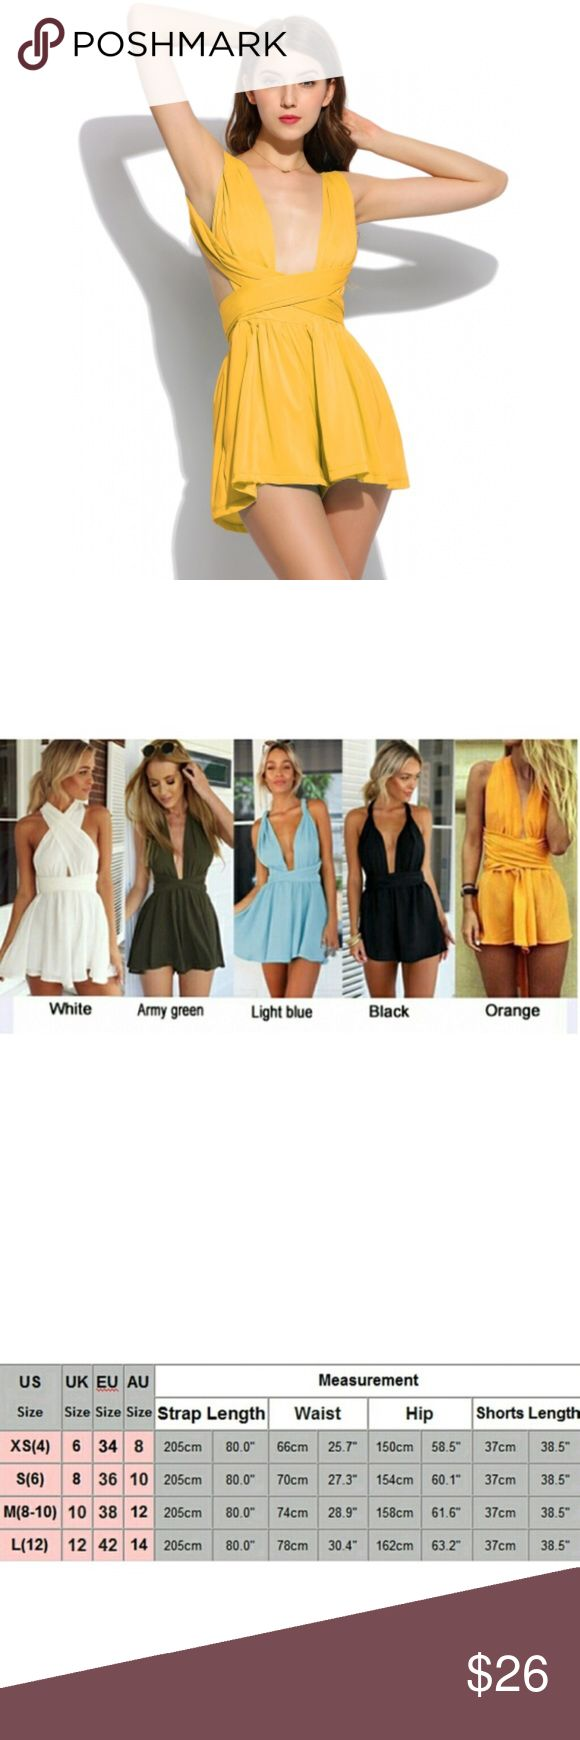 ✨COMING SOON✨ Yellow Multi Way Romper These rompers are amazing. With the high waisted shorts and the straps that can be wrapped any way will allow you to go out and get tons of compliments for the night or just dress up for fun.  ✨10% off bundles of 3+ items ✨Price is firm ✨No trades, holds or off Posh transactions Dresses